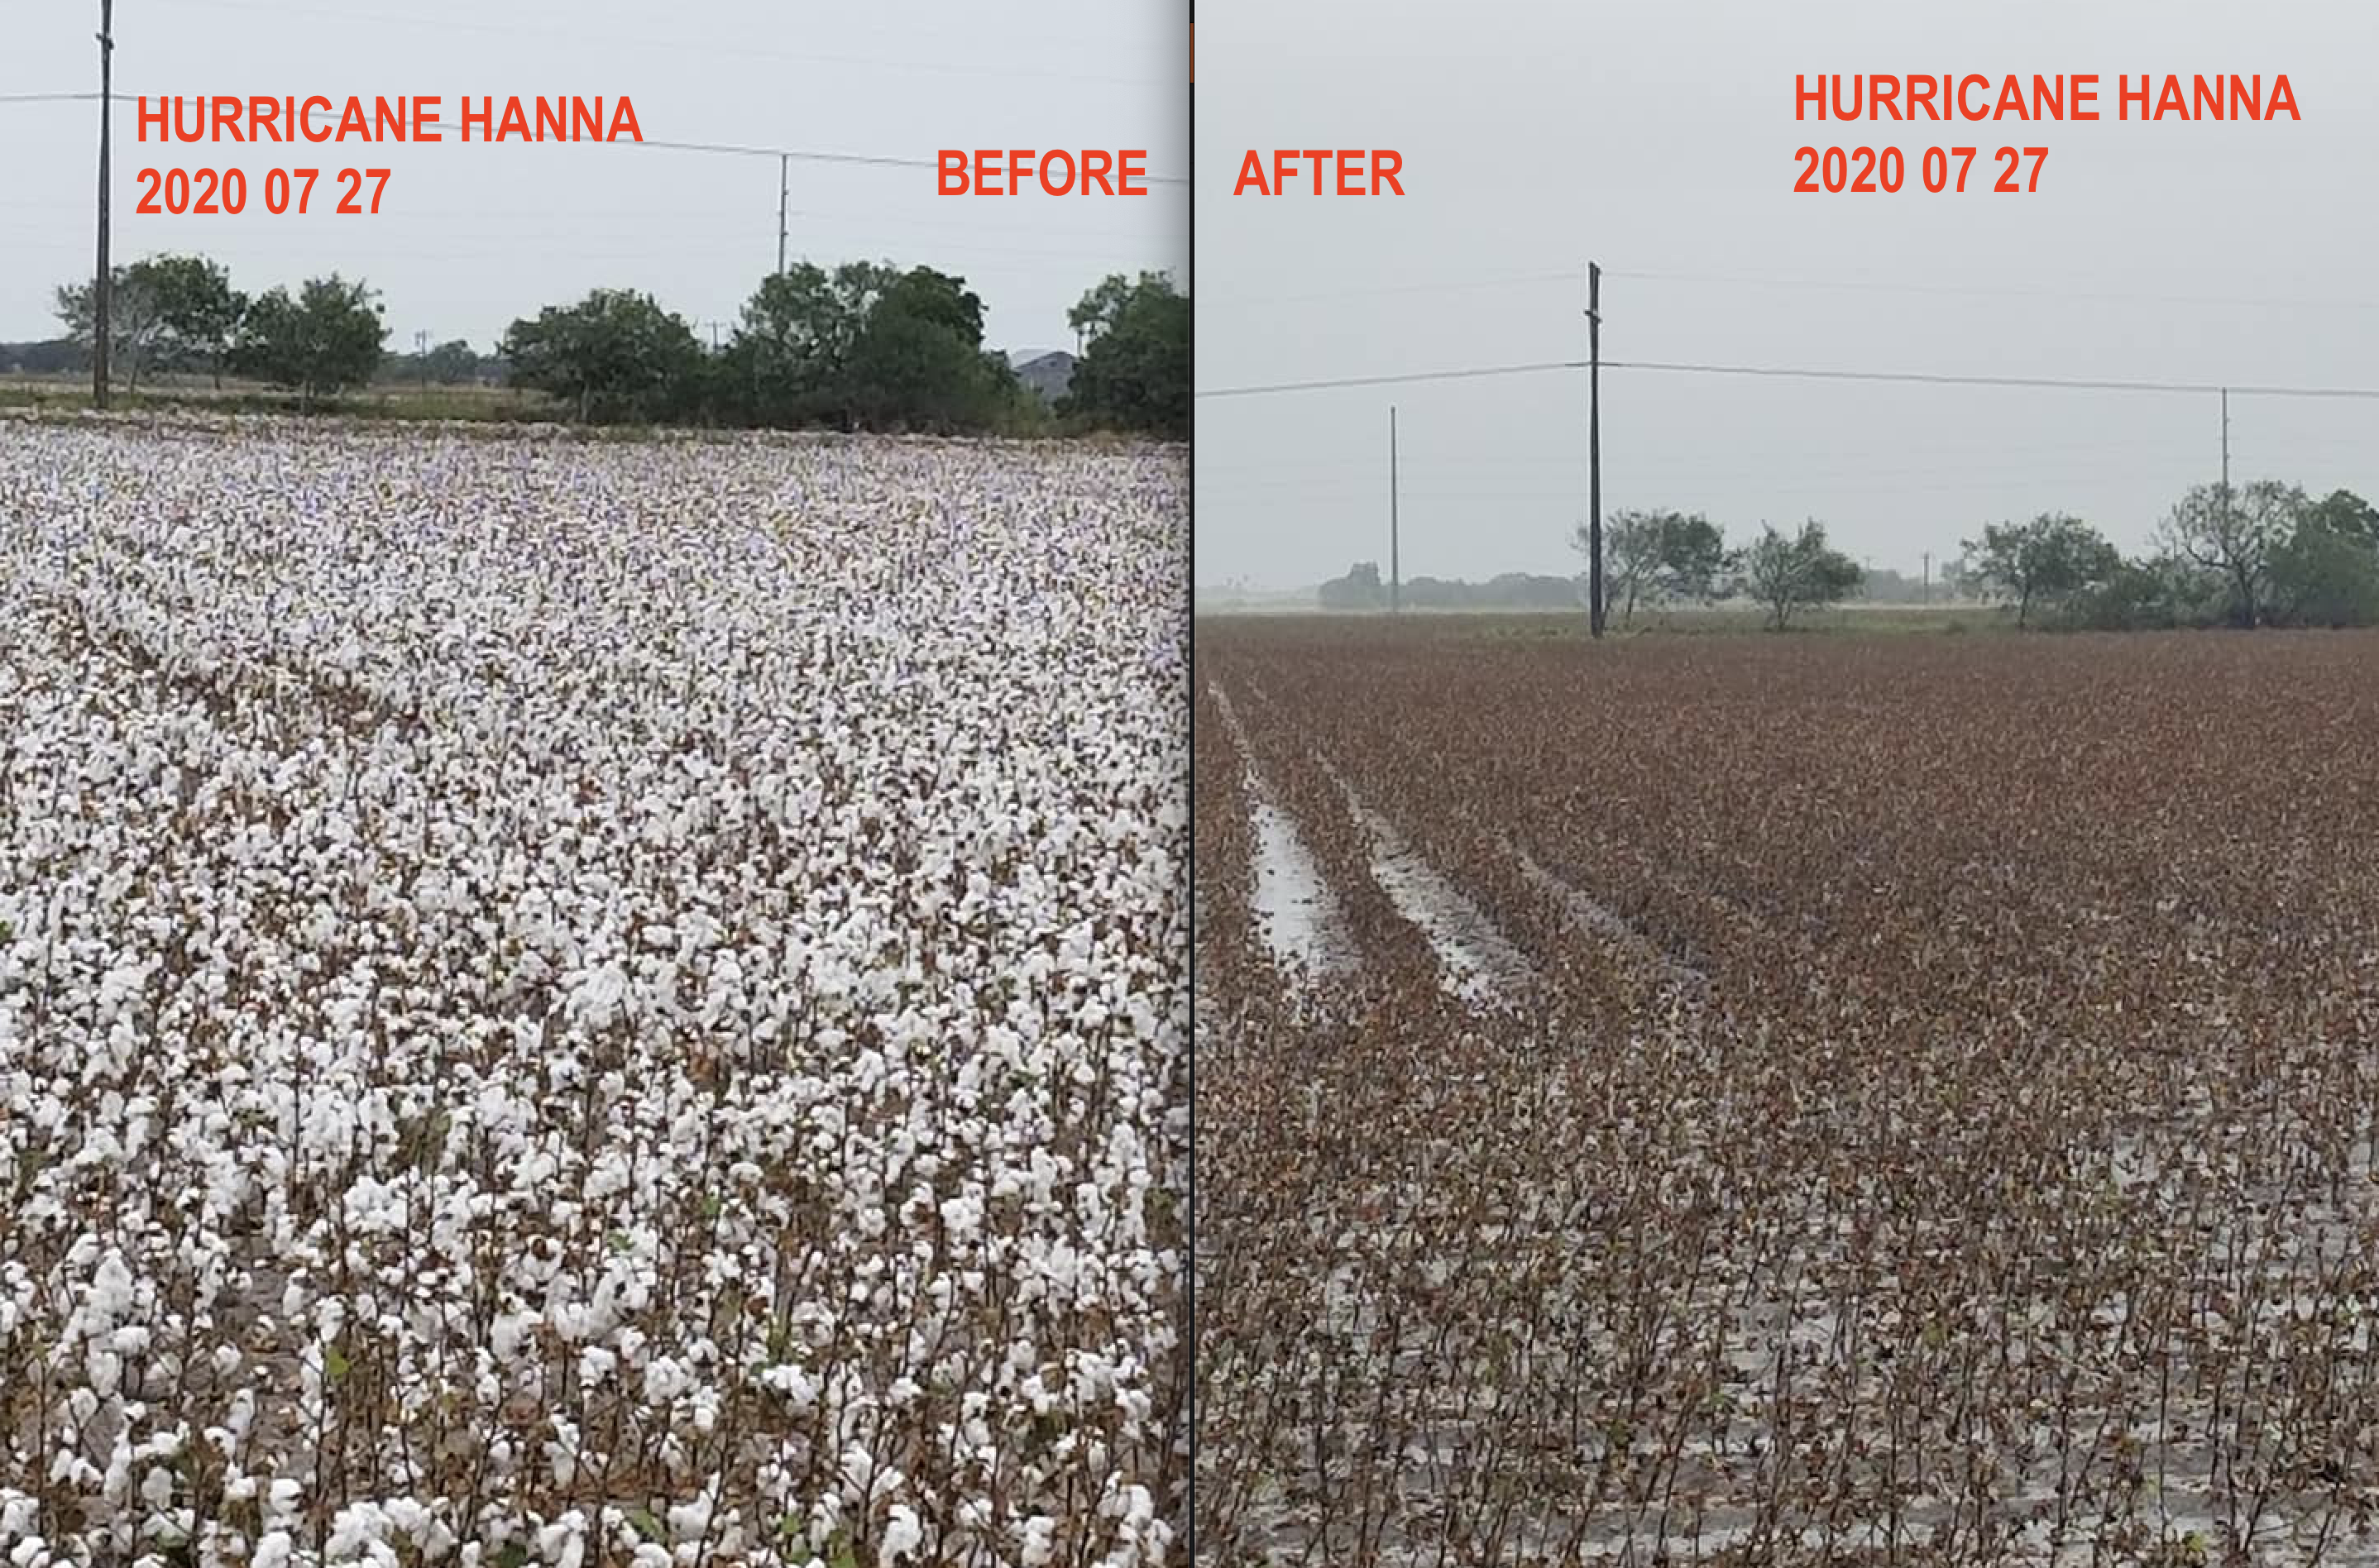 Hurricane Hanna In 2020 Hurricane Before And After Pictures Hanna